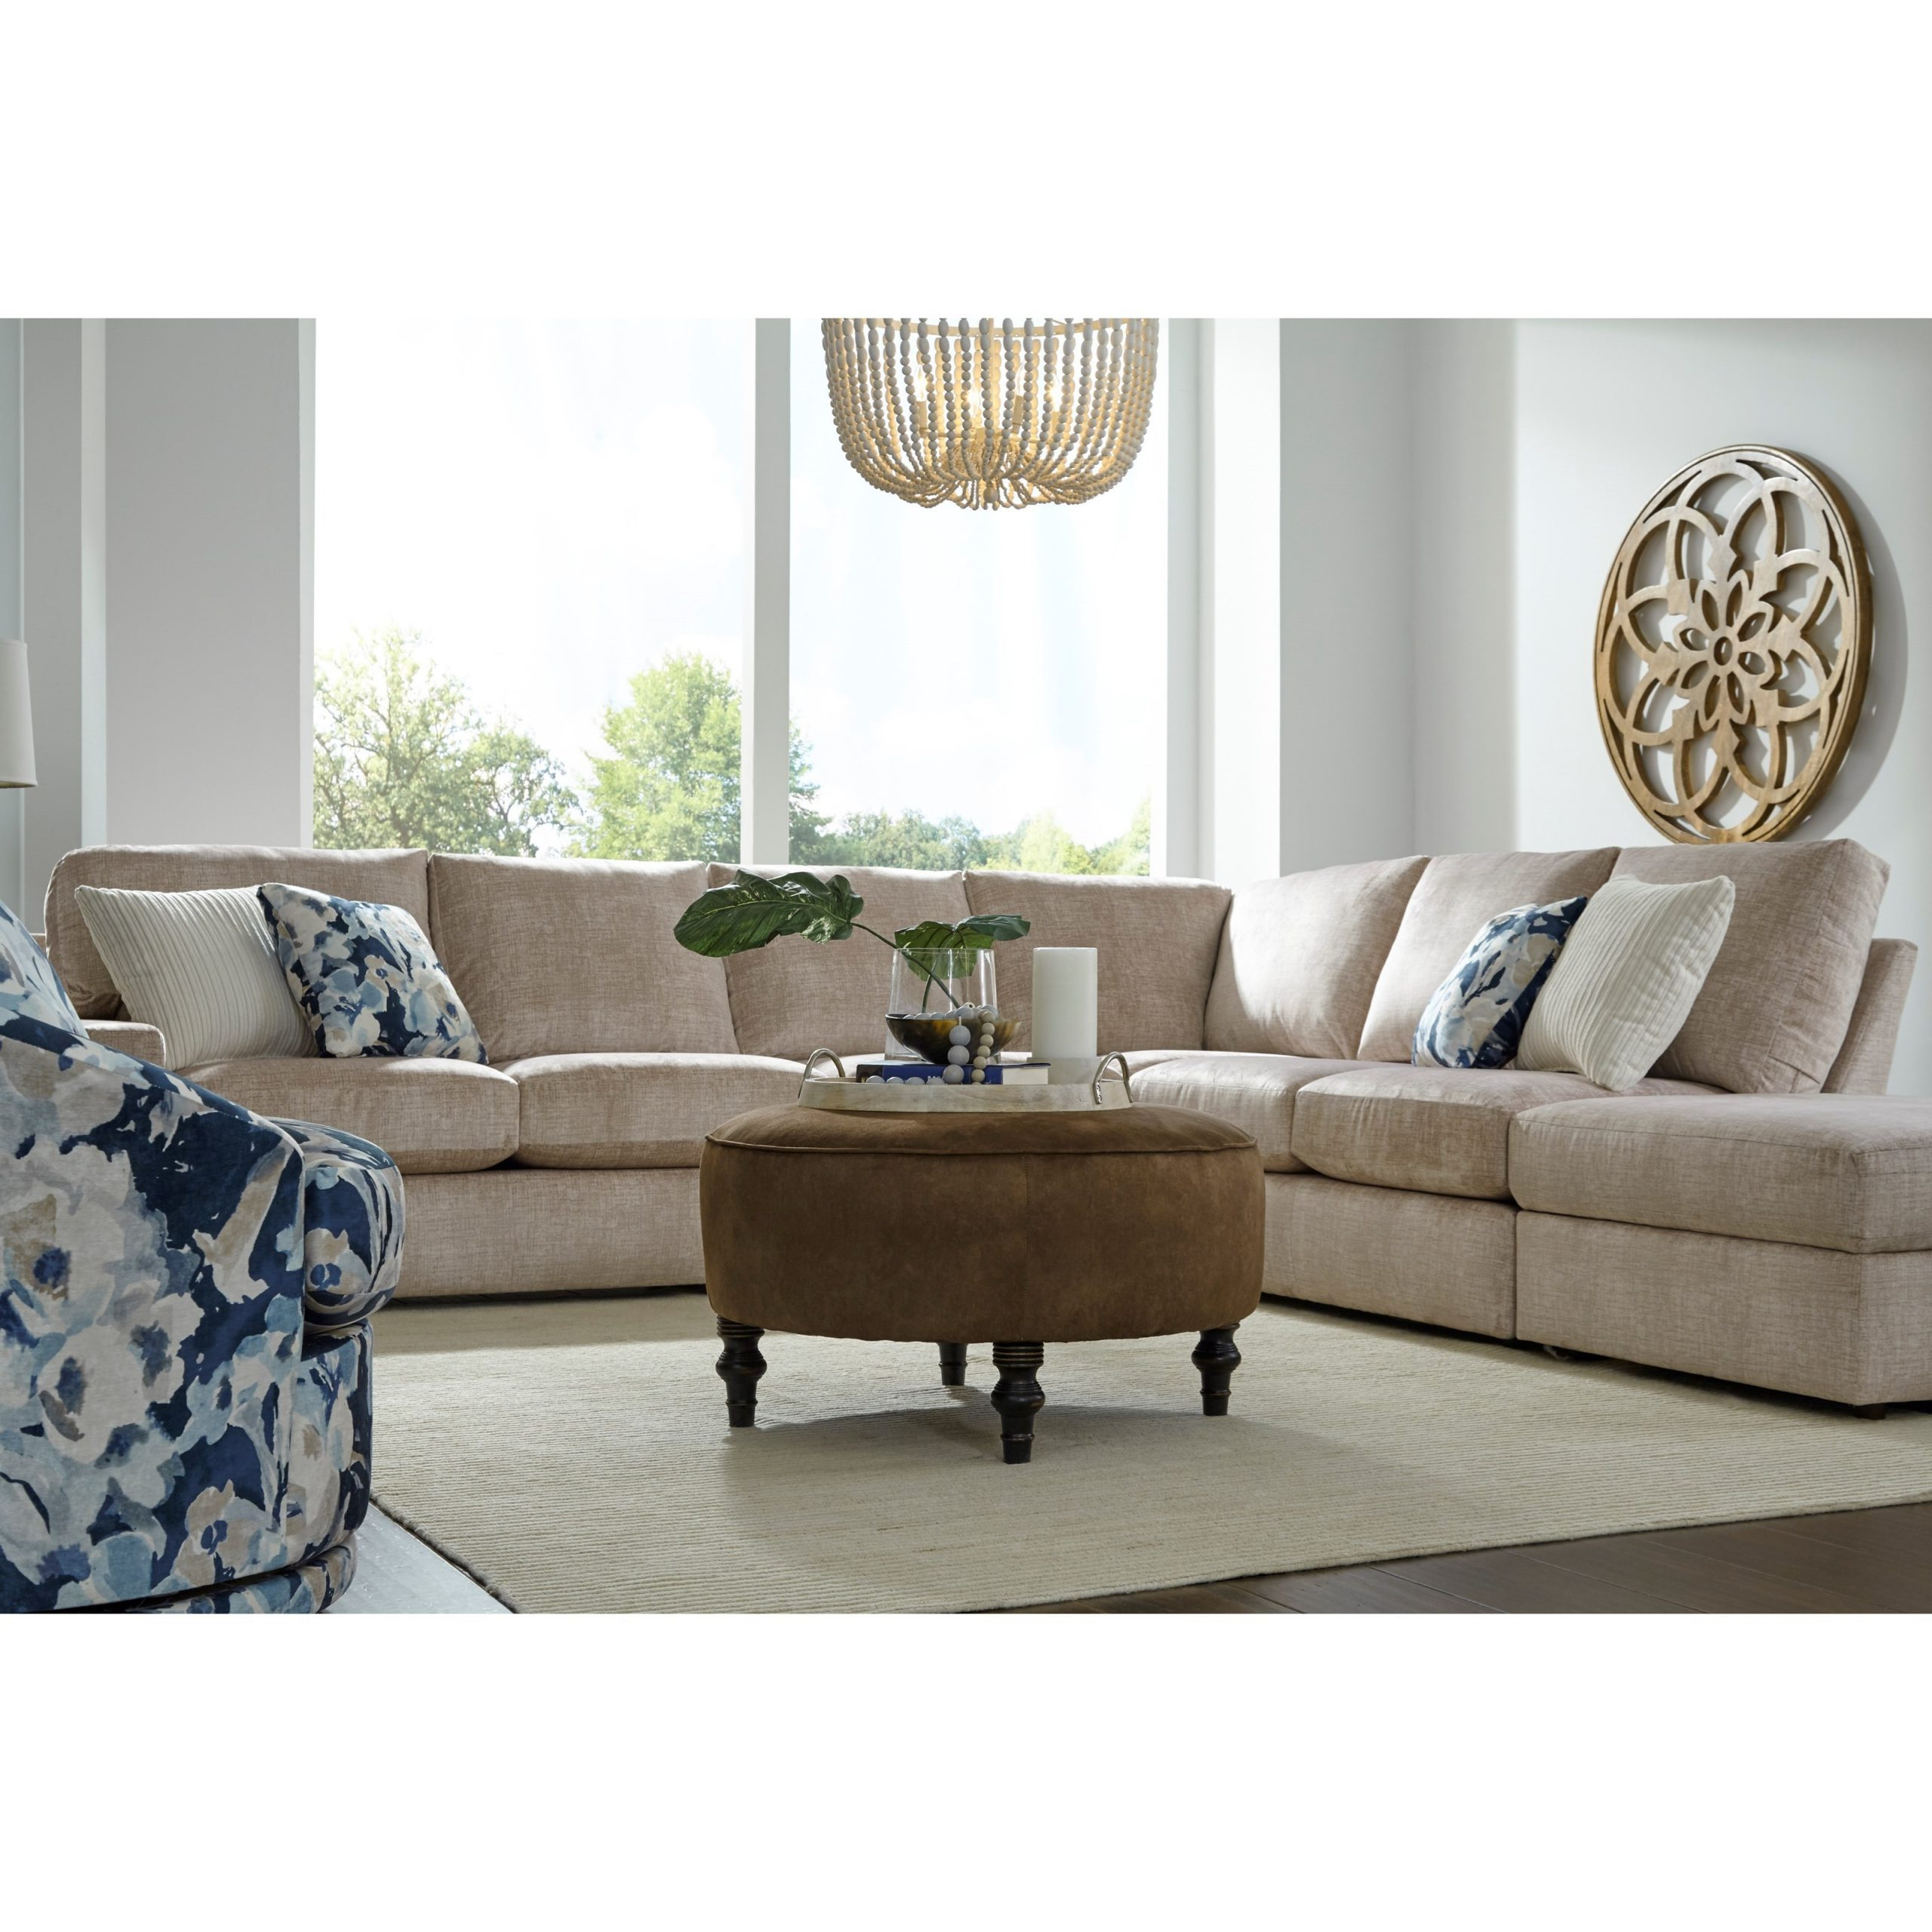 Best Home Furnishings Dovely Casual Five Seat Sectional Throughout Copenhagen Reversible Small Space Sectional Sofas With Storage (View 3 of 15)